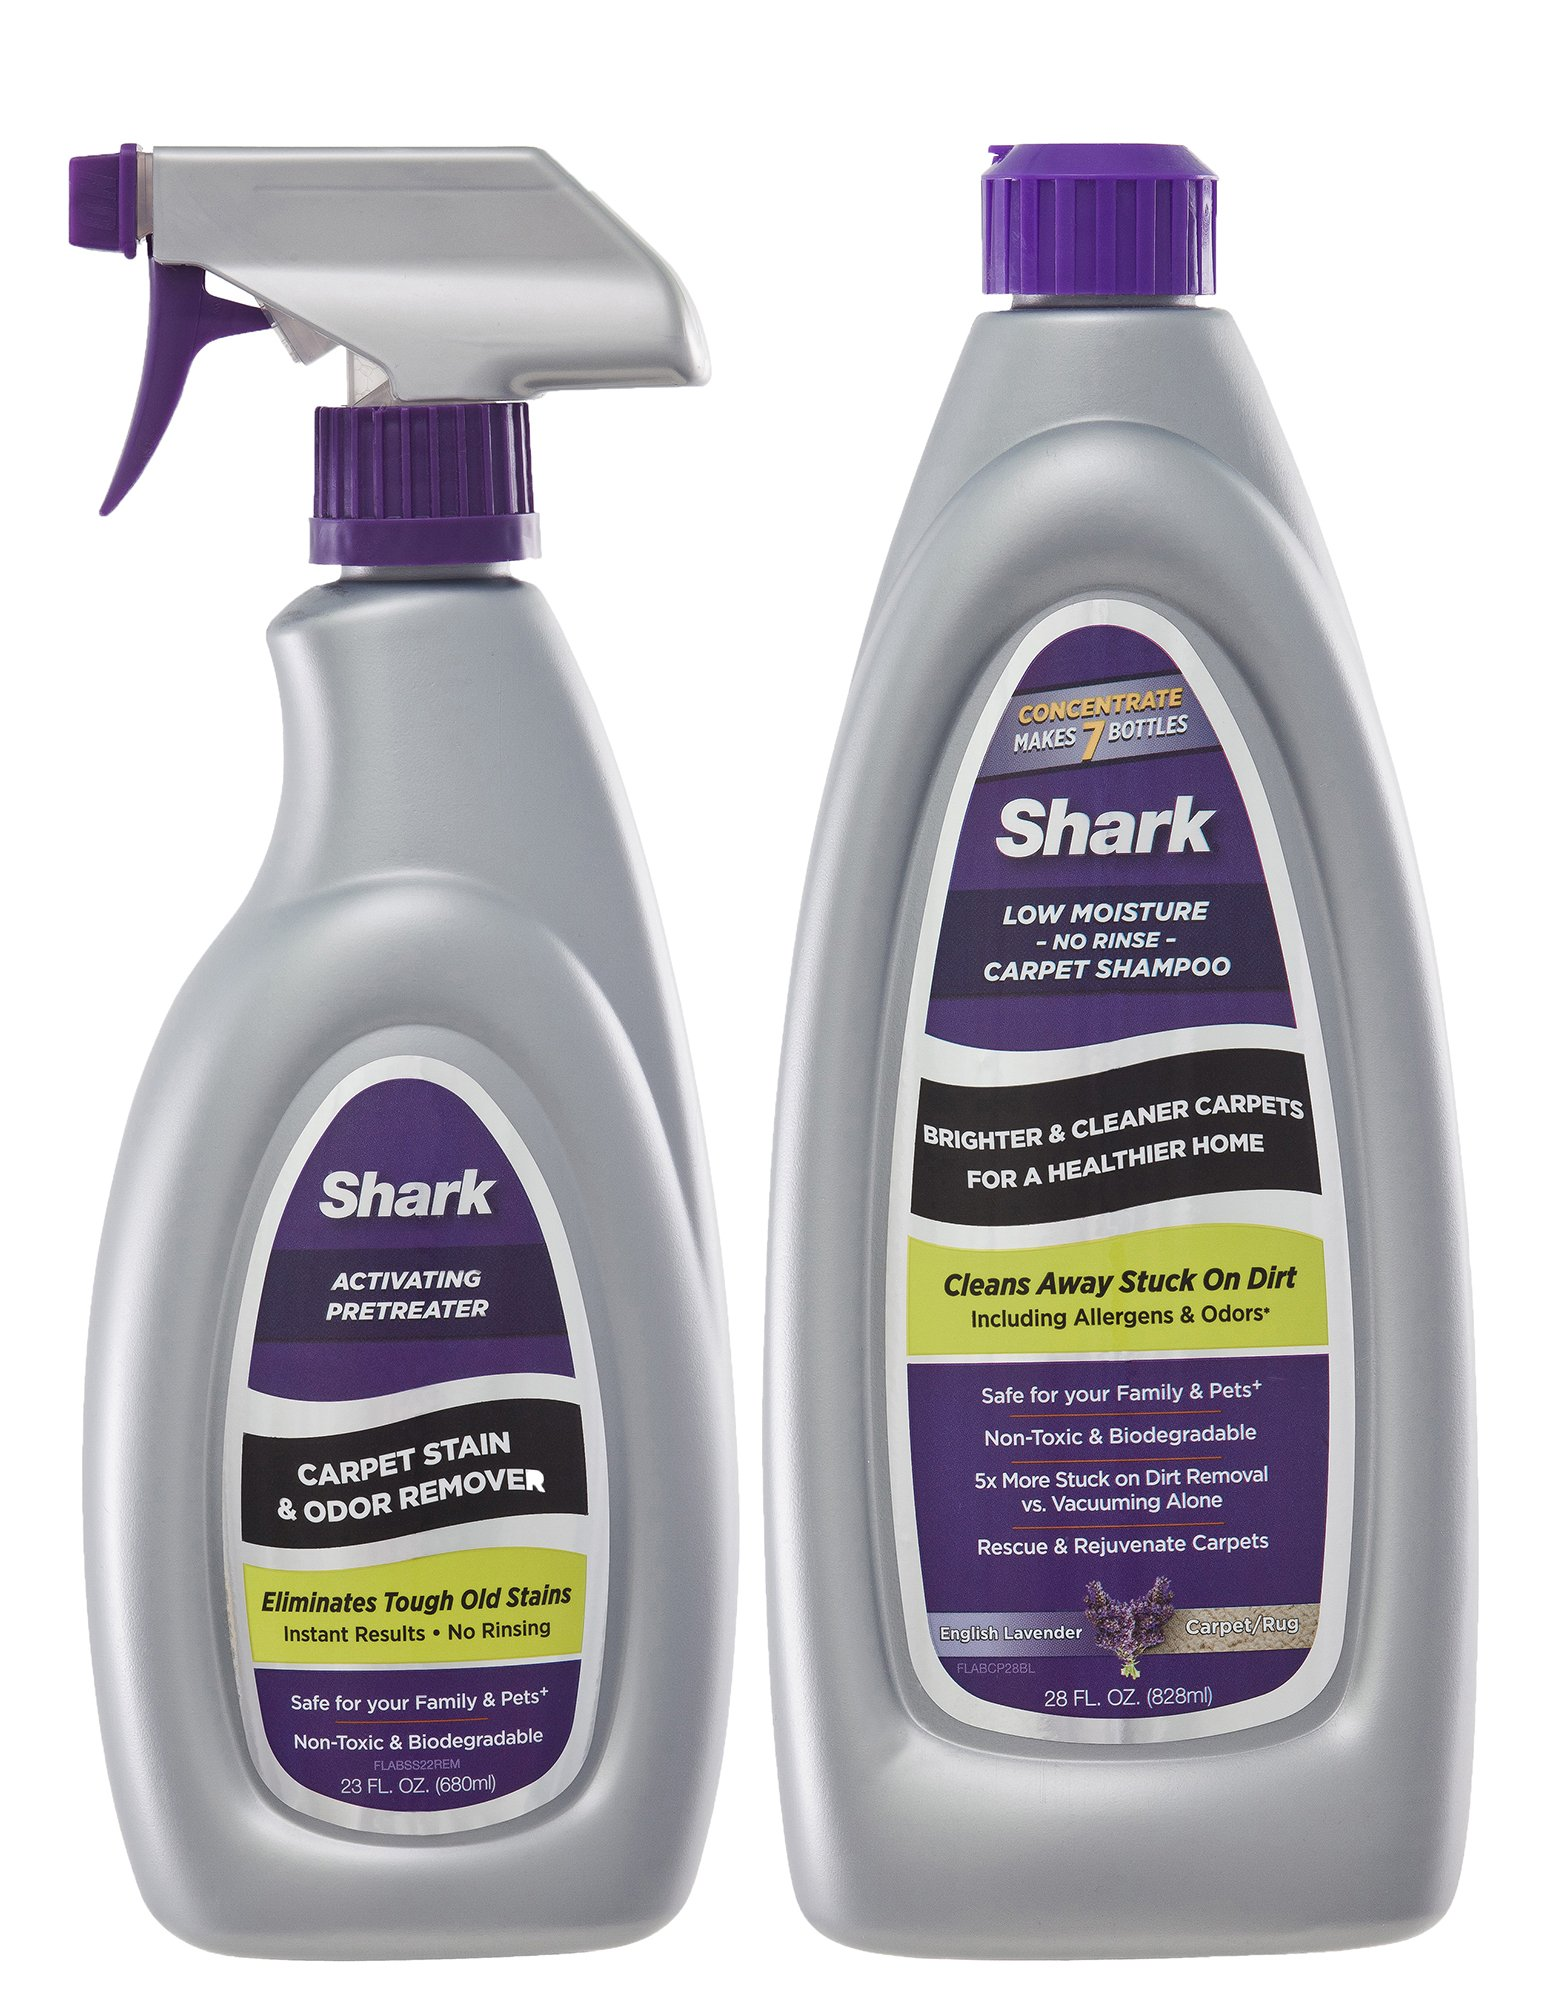 Shark Carpet Cleaner Carpet Shampoo Concentrate For Use